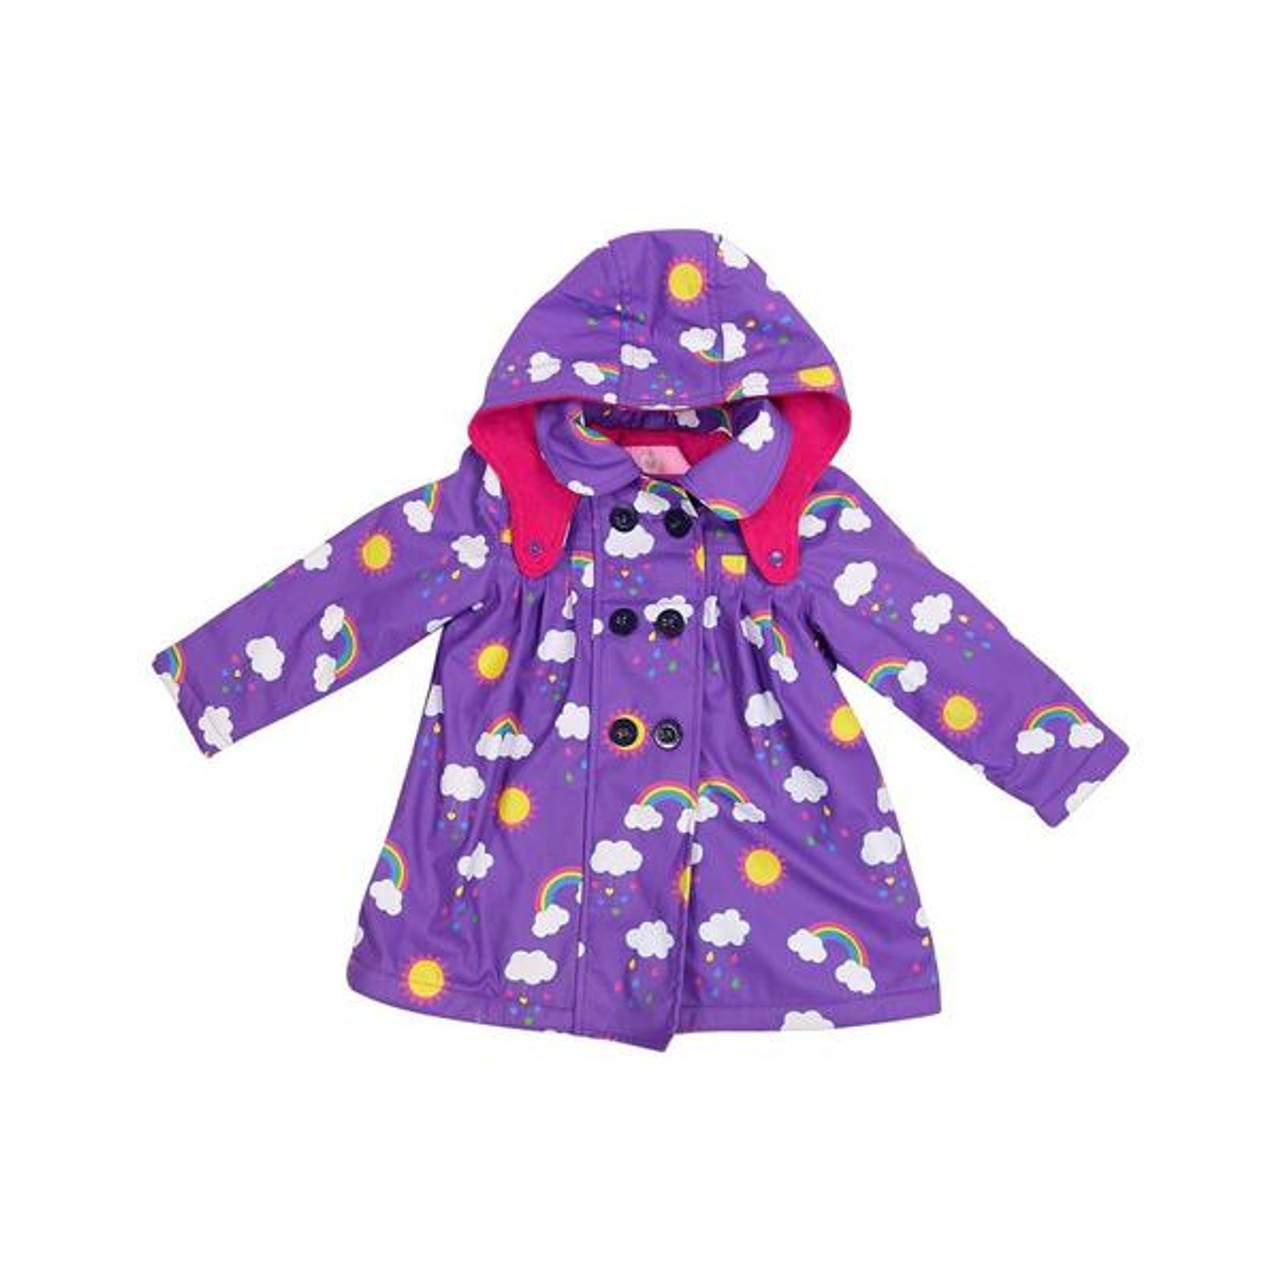 Korango Raincoat 6 Years Polar Fleece Lined at Baby Barn Discounts Beautifully designed, bright & fun raincoat from Korango. Perfect for rainy cold days. Waterproof on the outside with soft fleece lining for comfort.